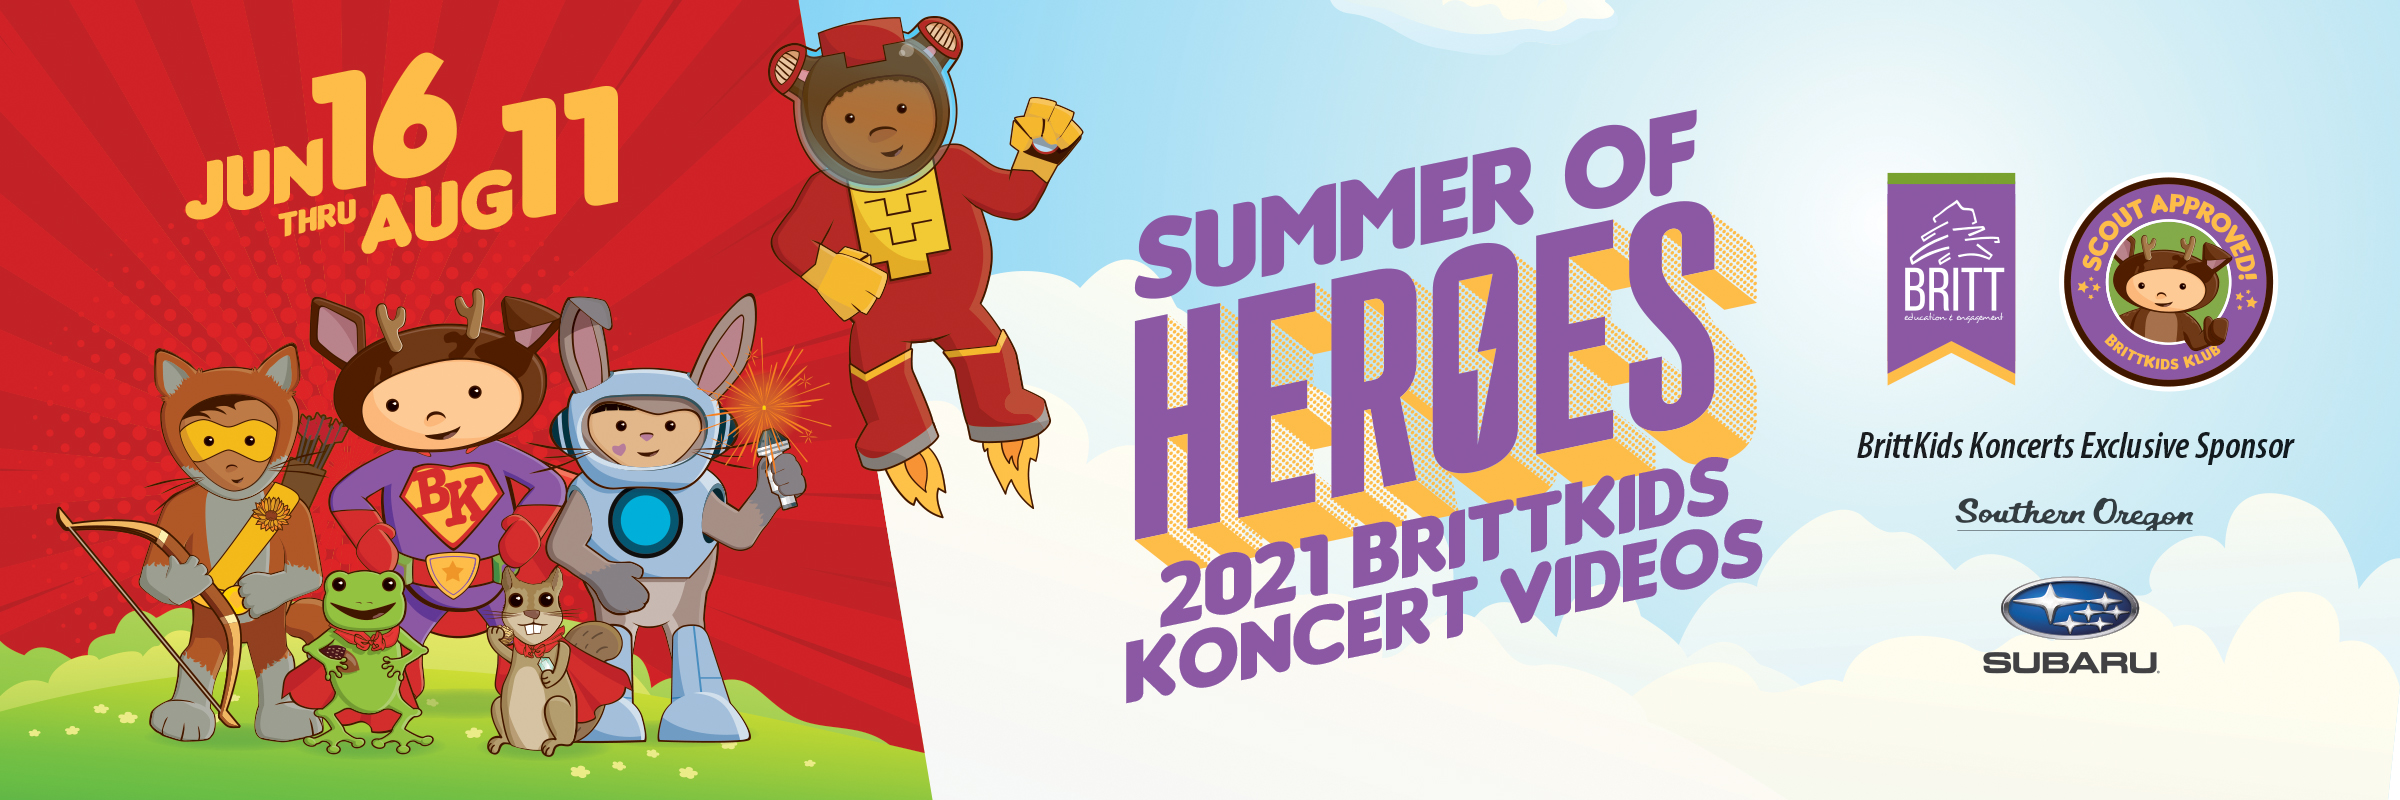 bkk updated video page graphic heroes21